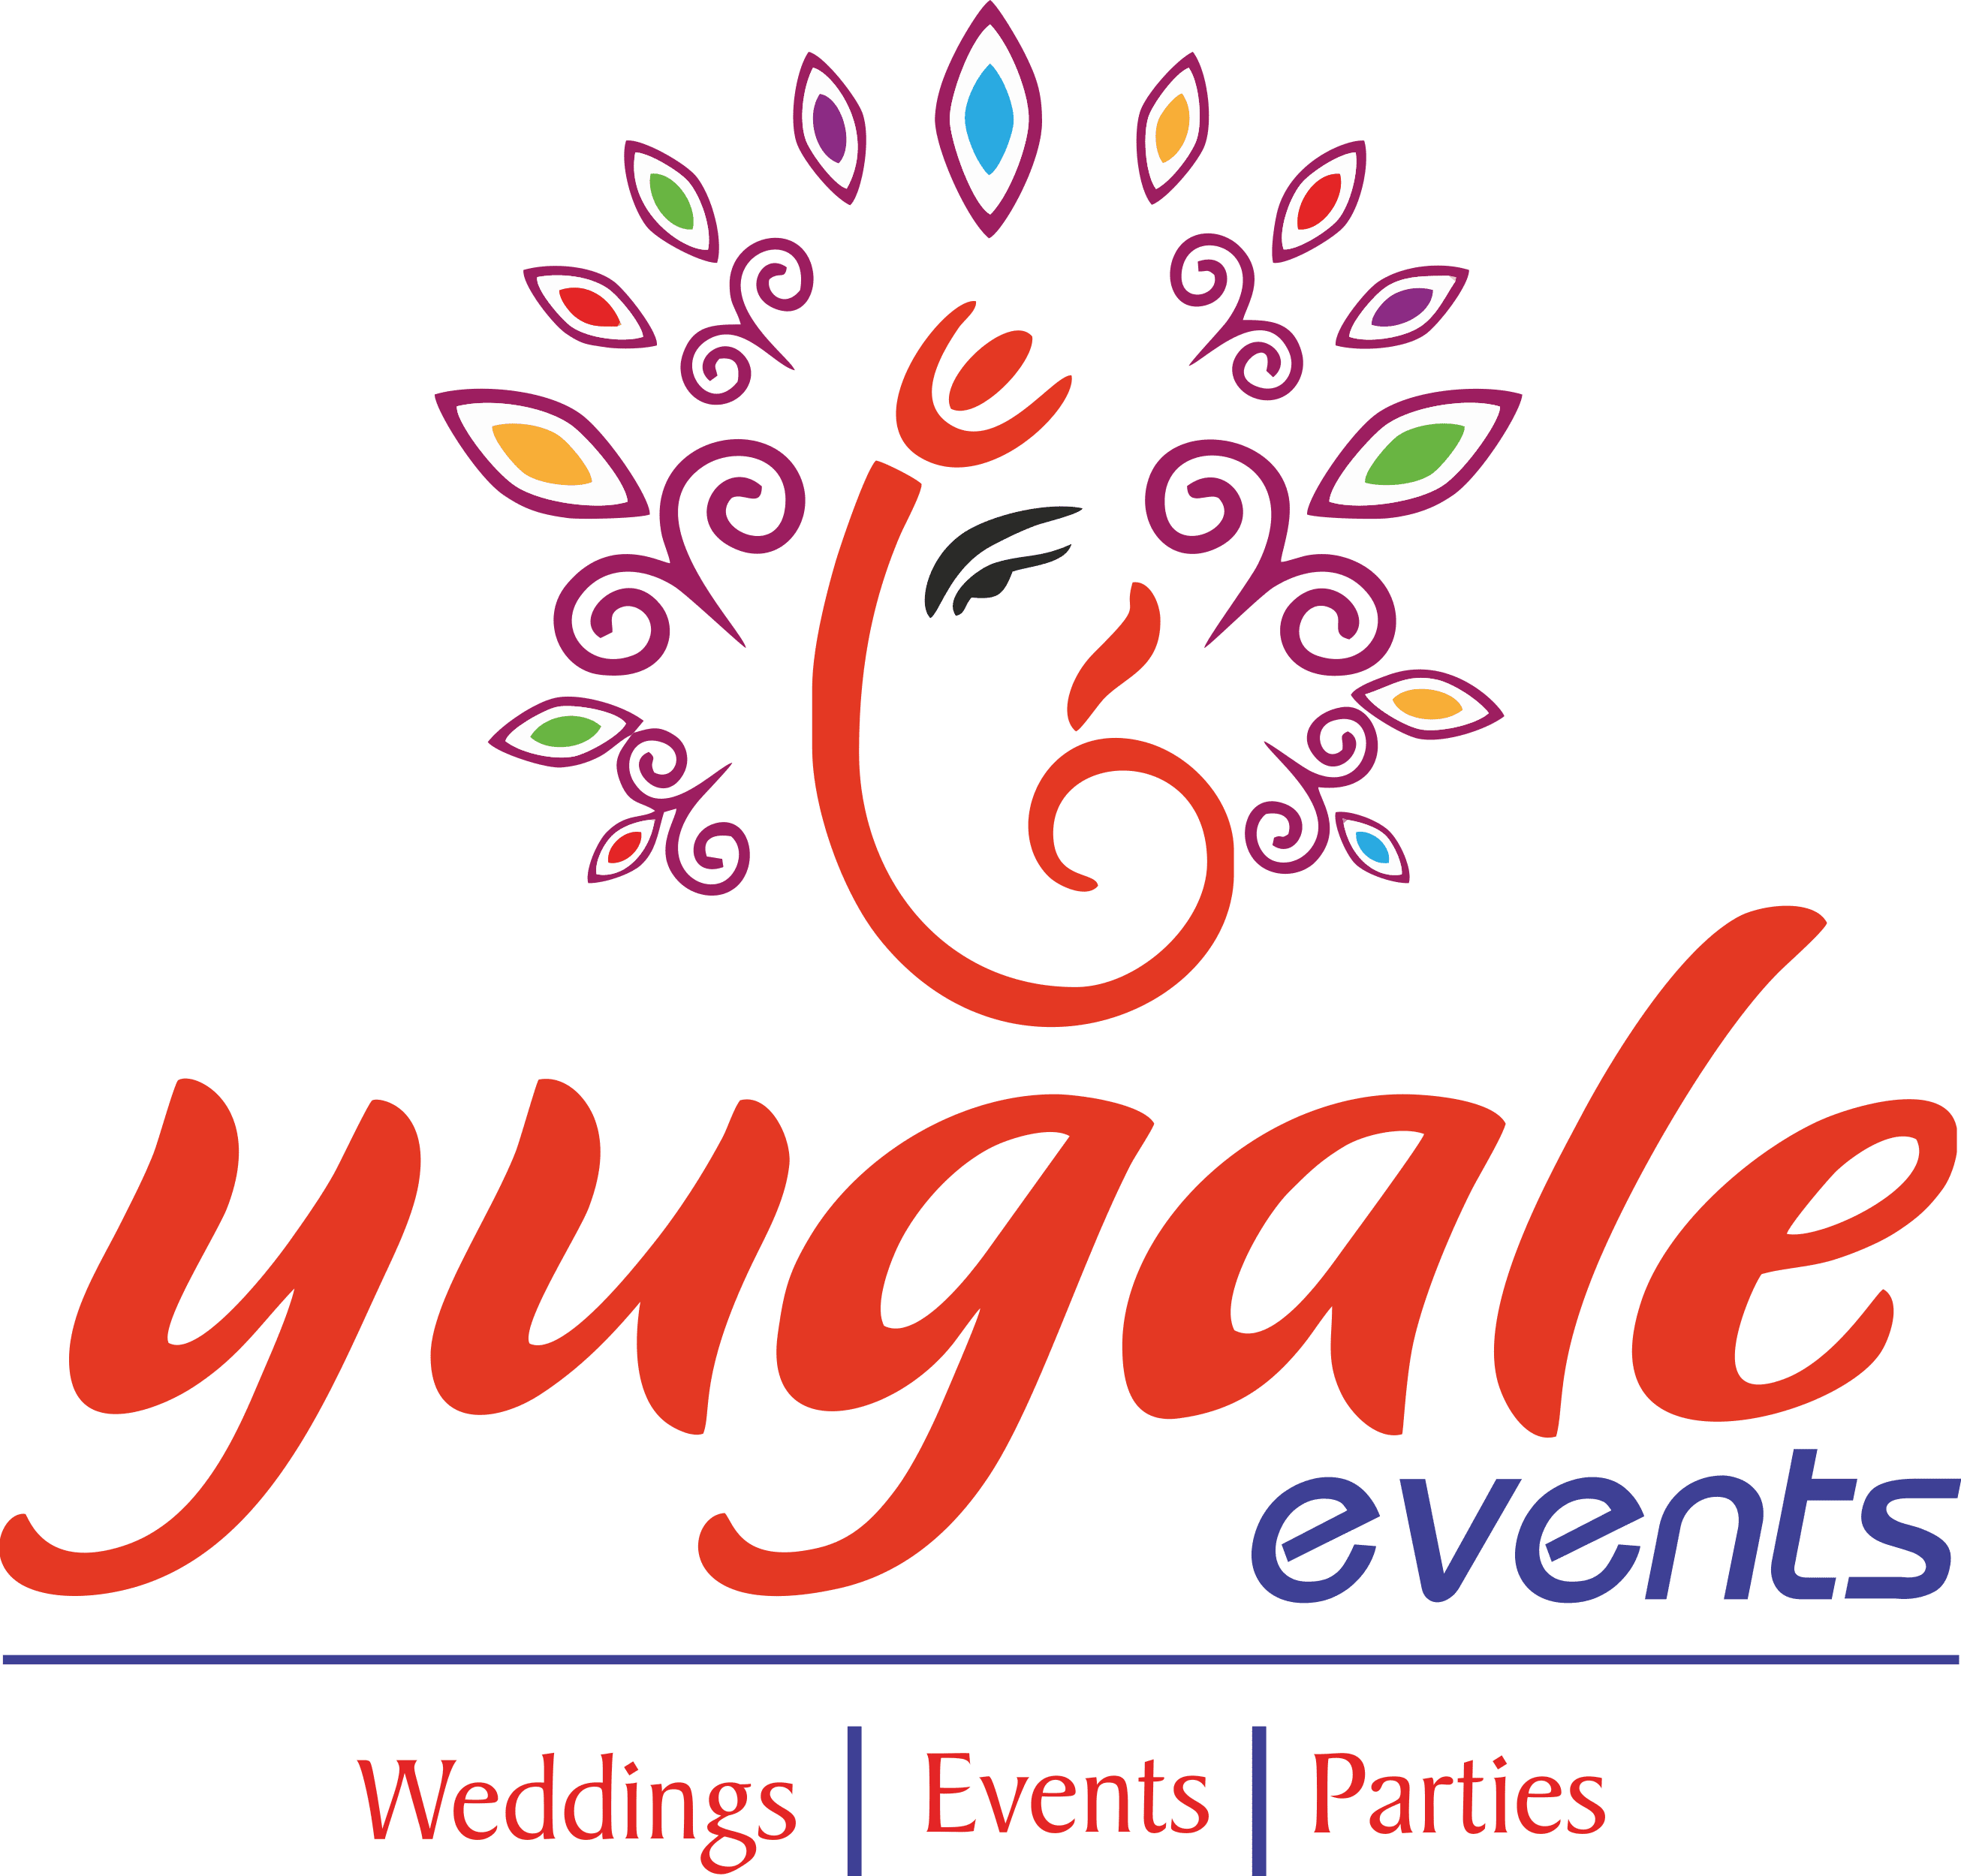 Yugale Events